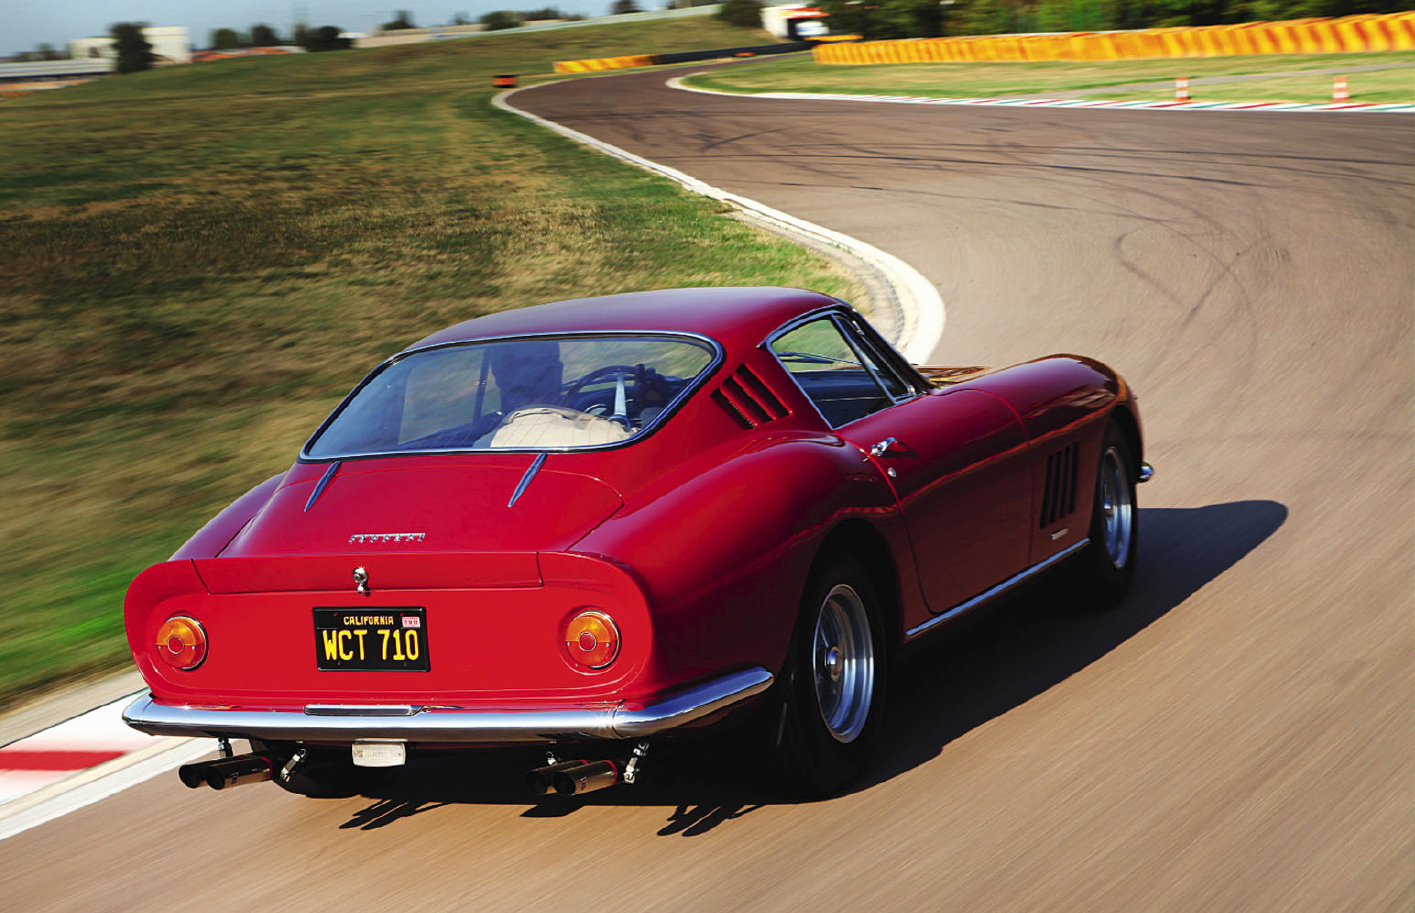 Steve McQueen's Ferrari dream drive of the King of Cool's sublime 275GTB/4 at Fiorano